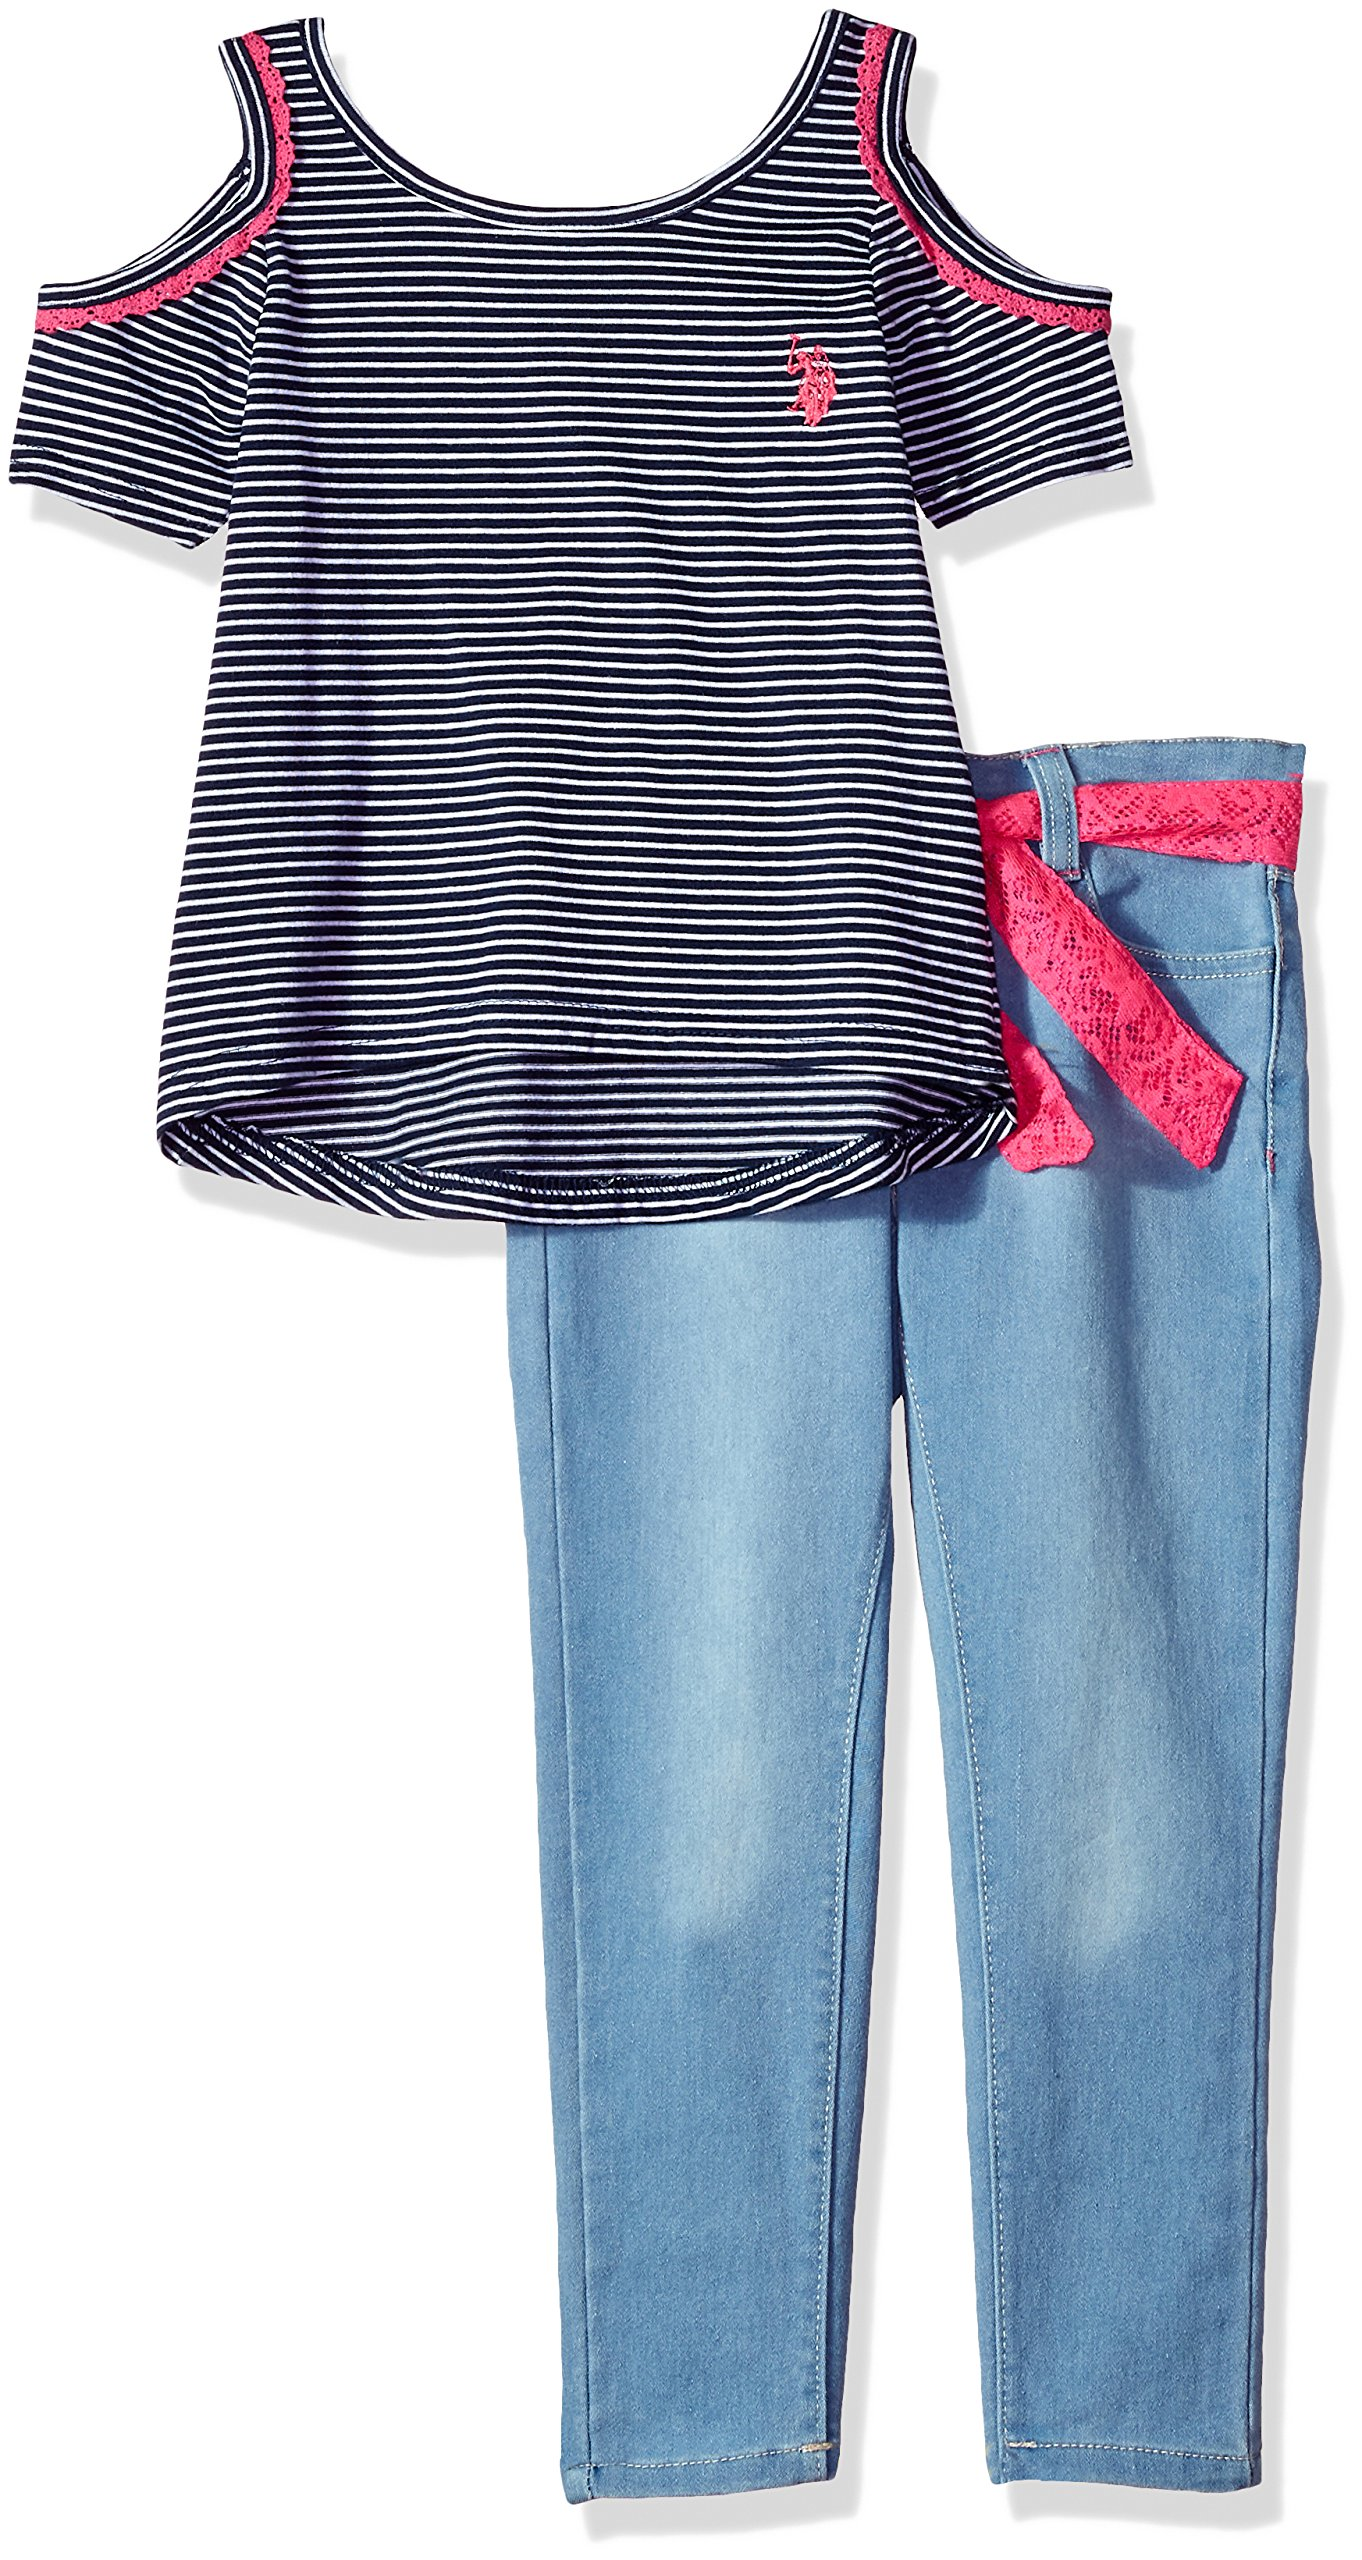 U.S. Polo Assn. Little Girls' Fashion Top and Pant Set, Cold should Stripe Top Sateen Denim Multi, 4